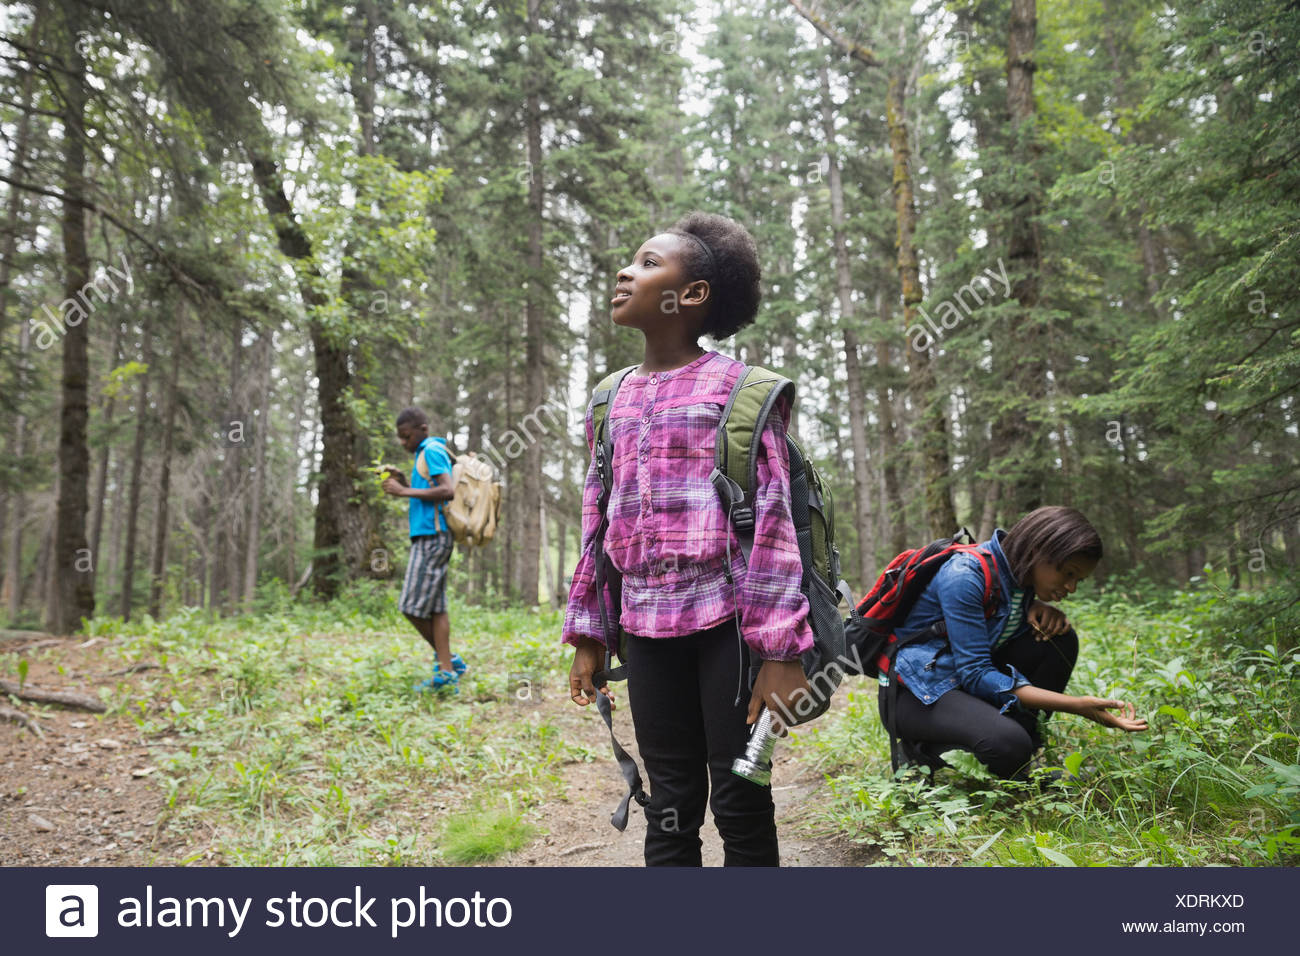 Siblings exploring in forest - Stock Image